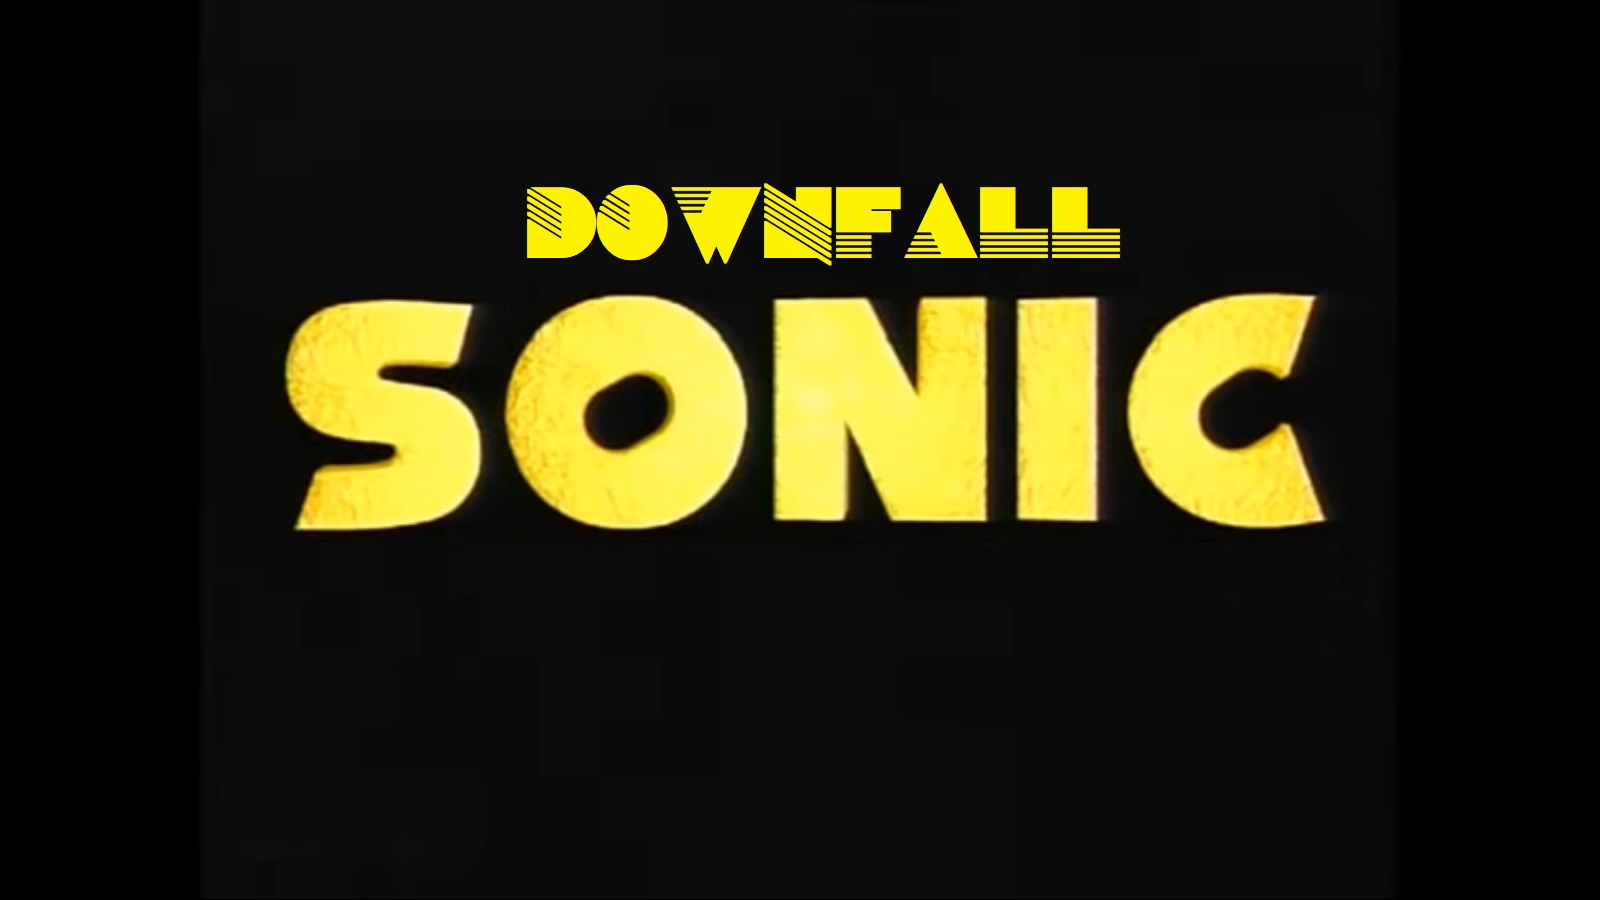 Downfall Sonic appeared!